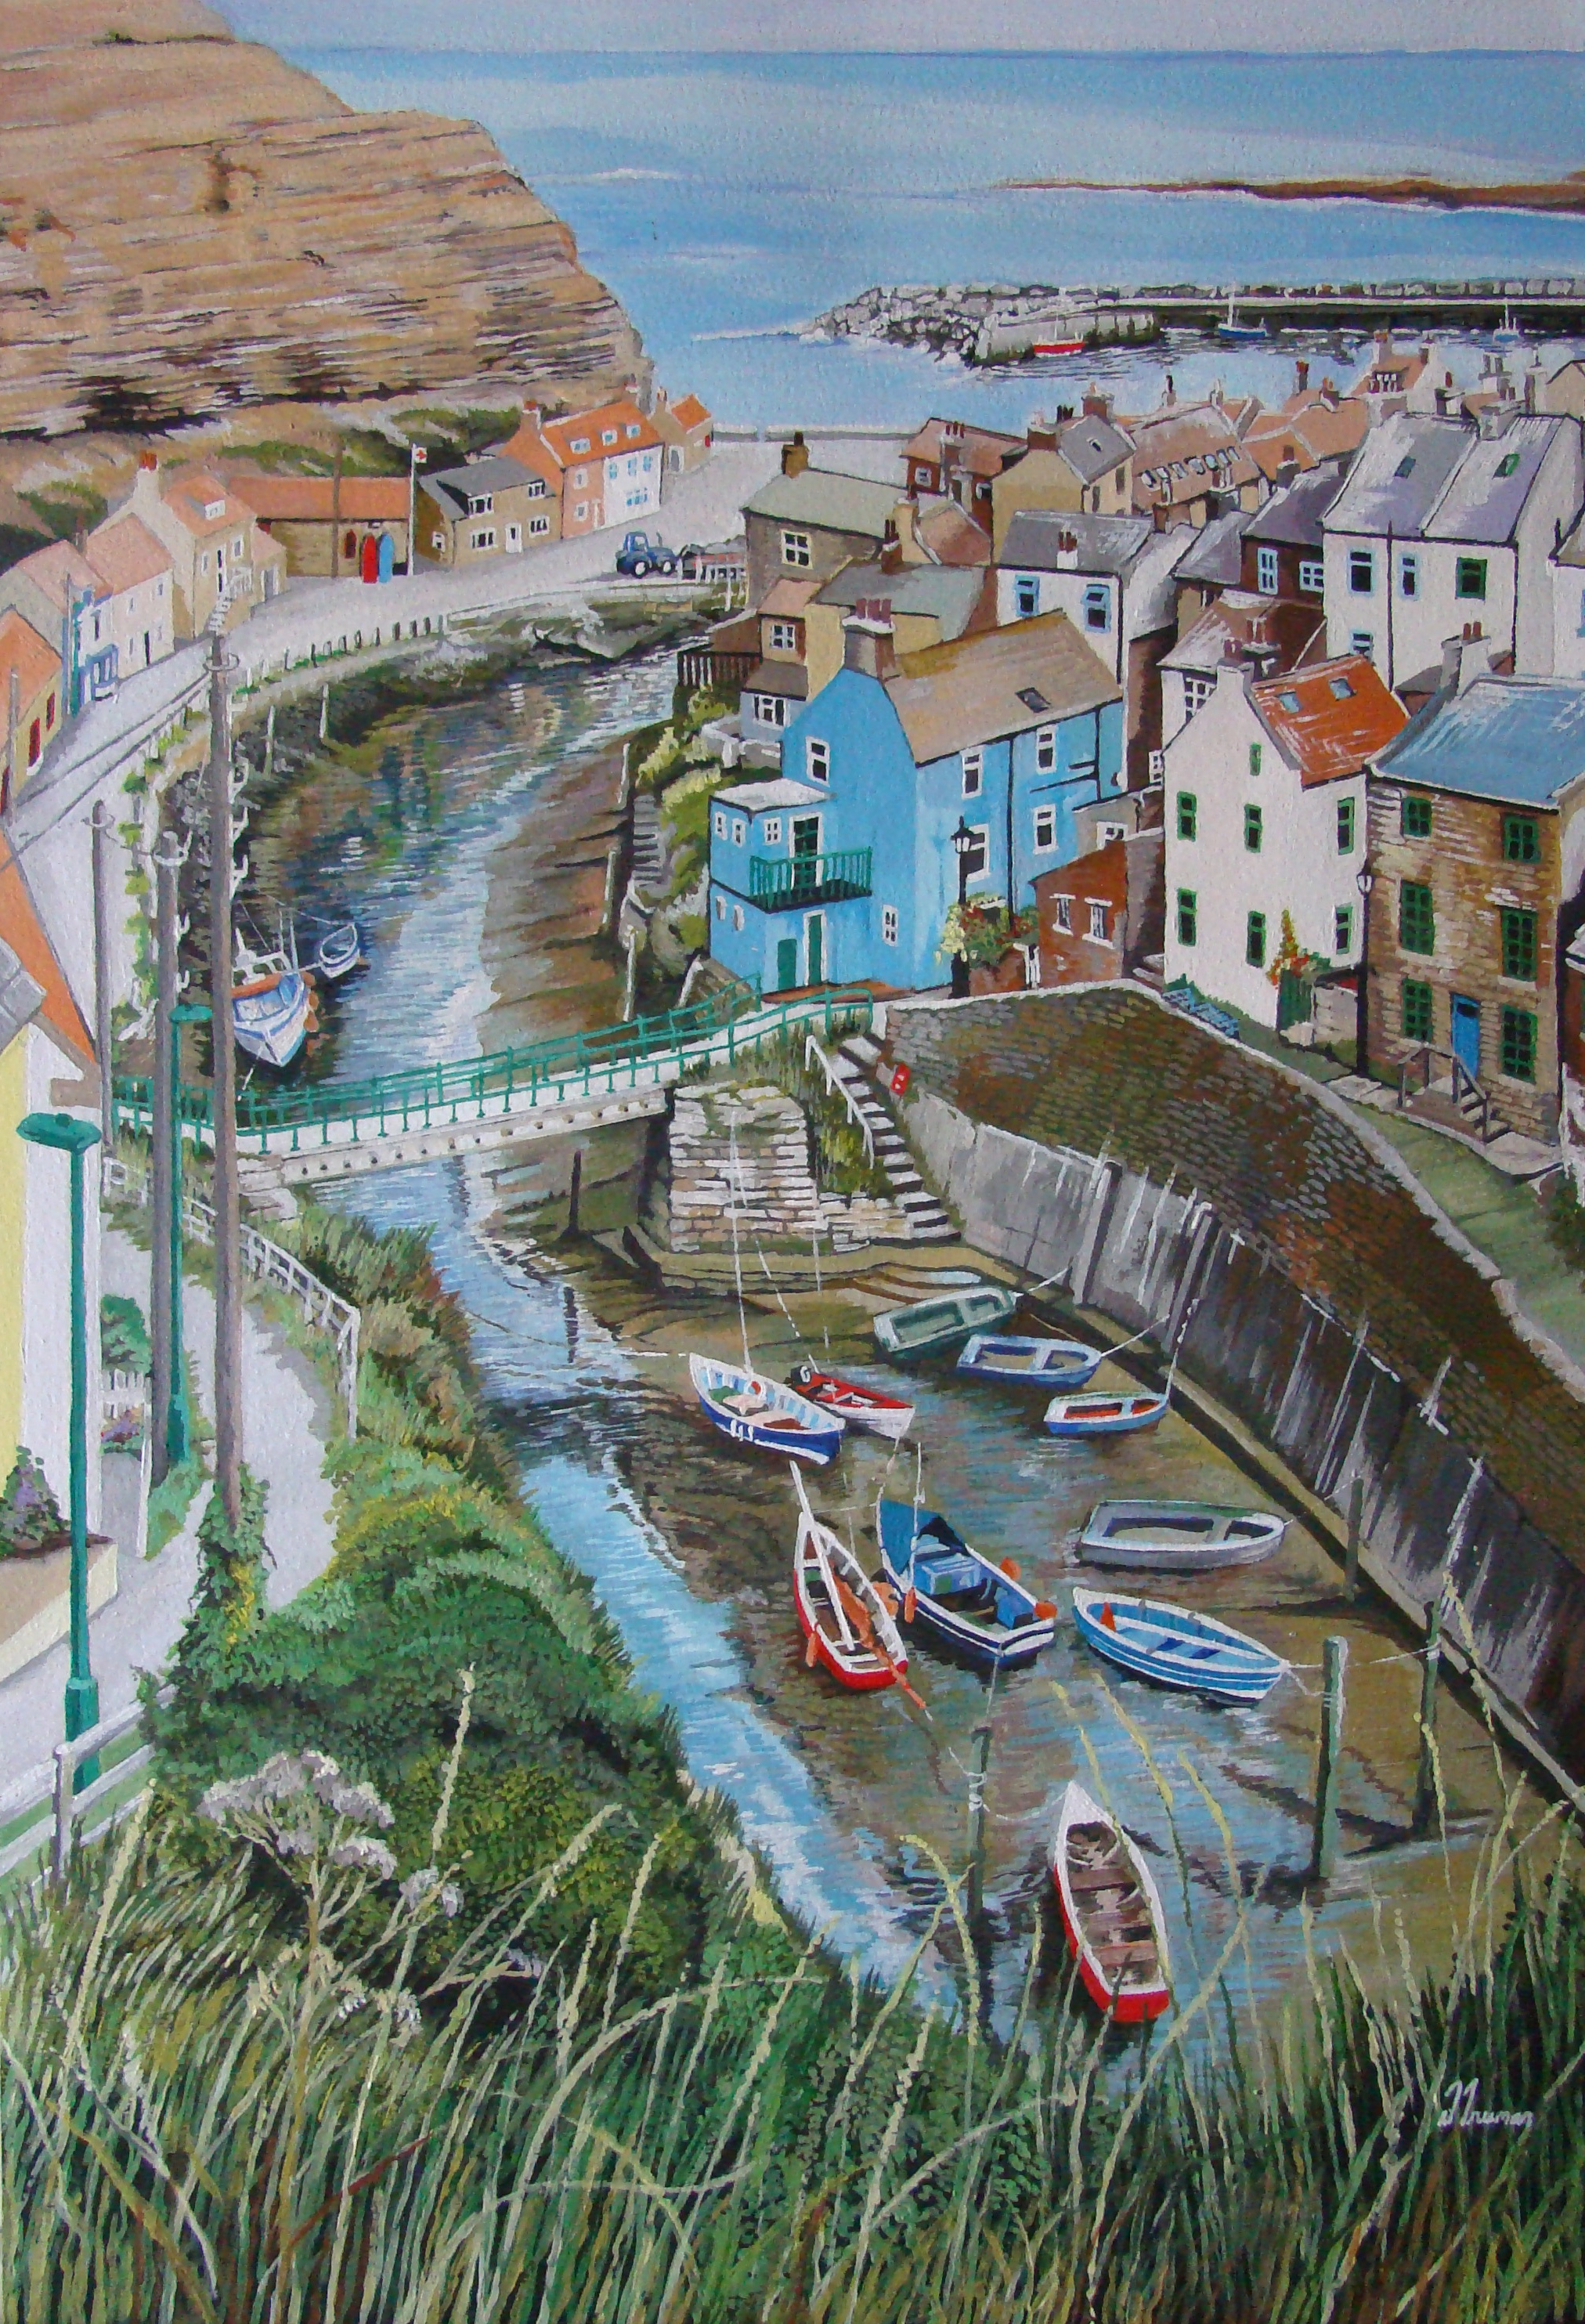 Step into Staithes